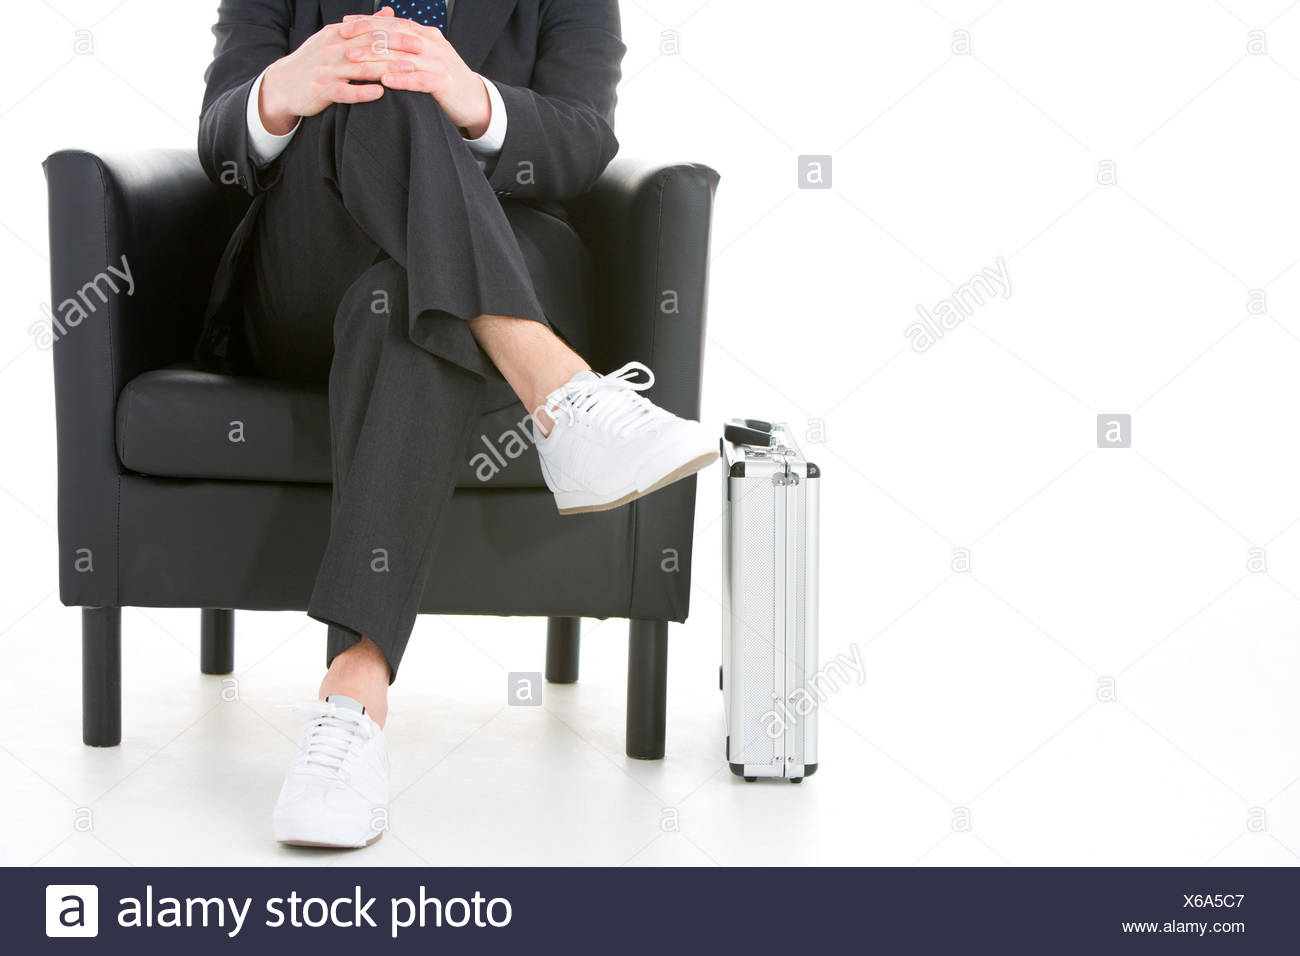 Businessman Sitting Wearing Sneakers - Stock Image